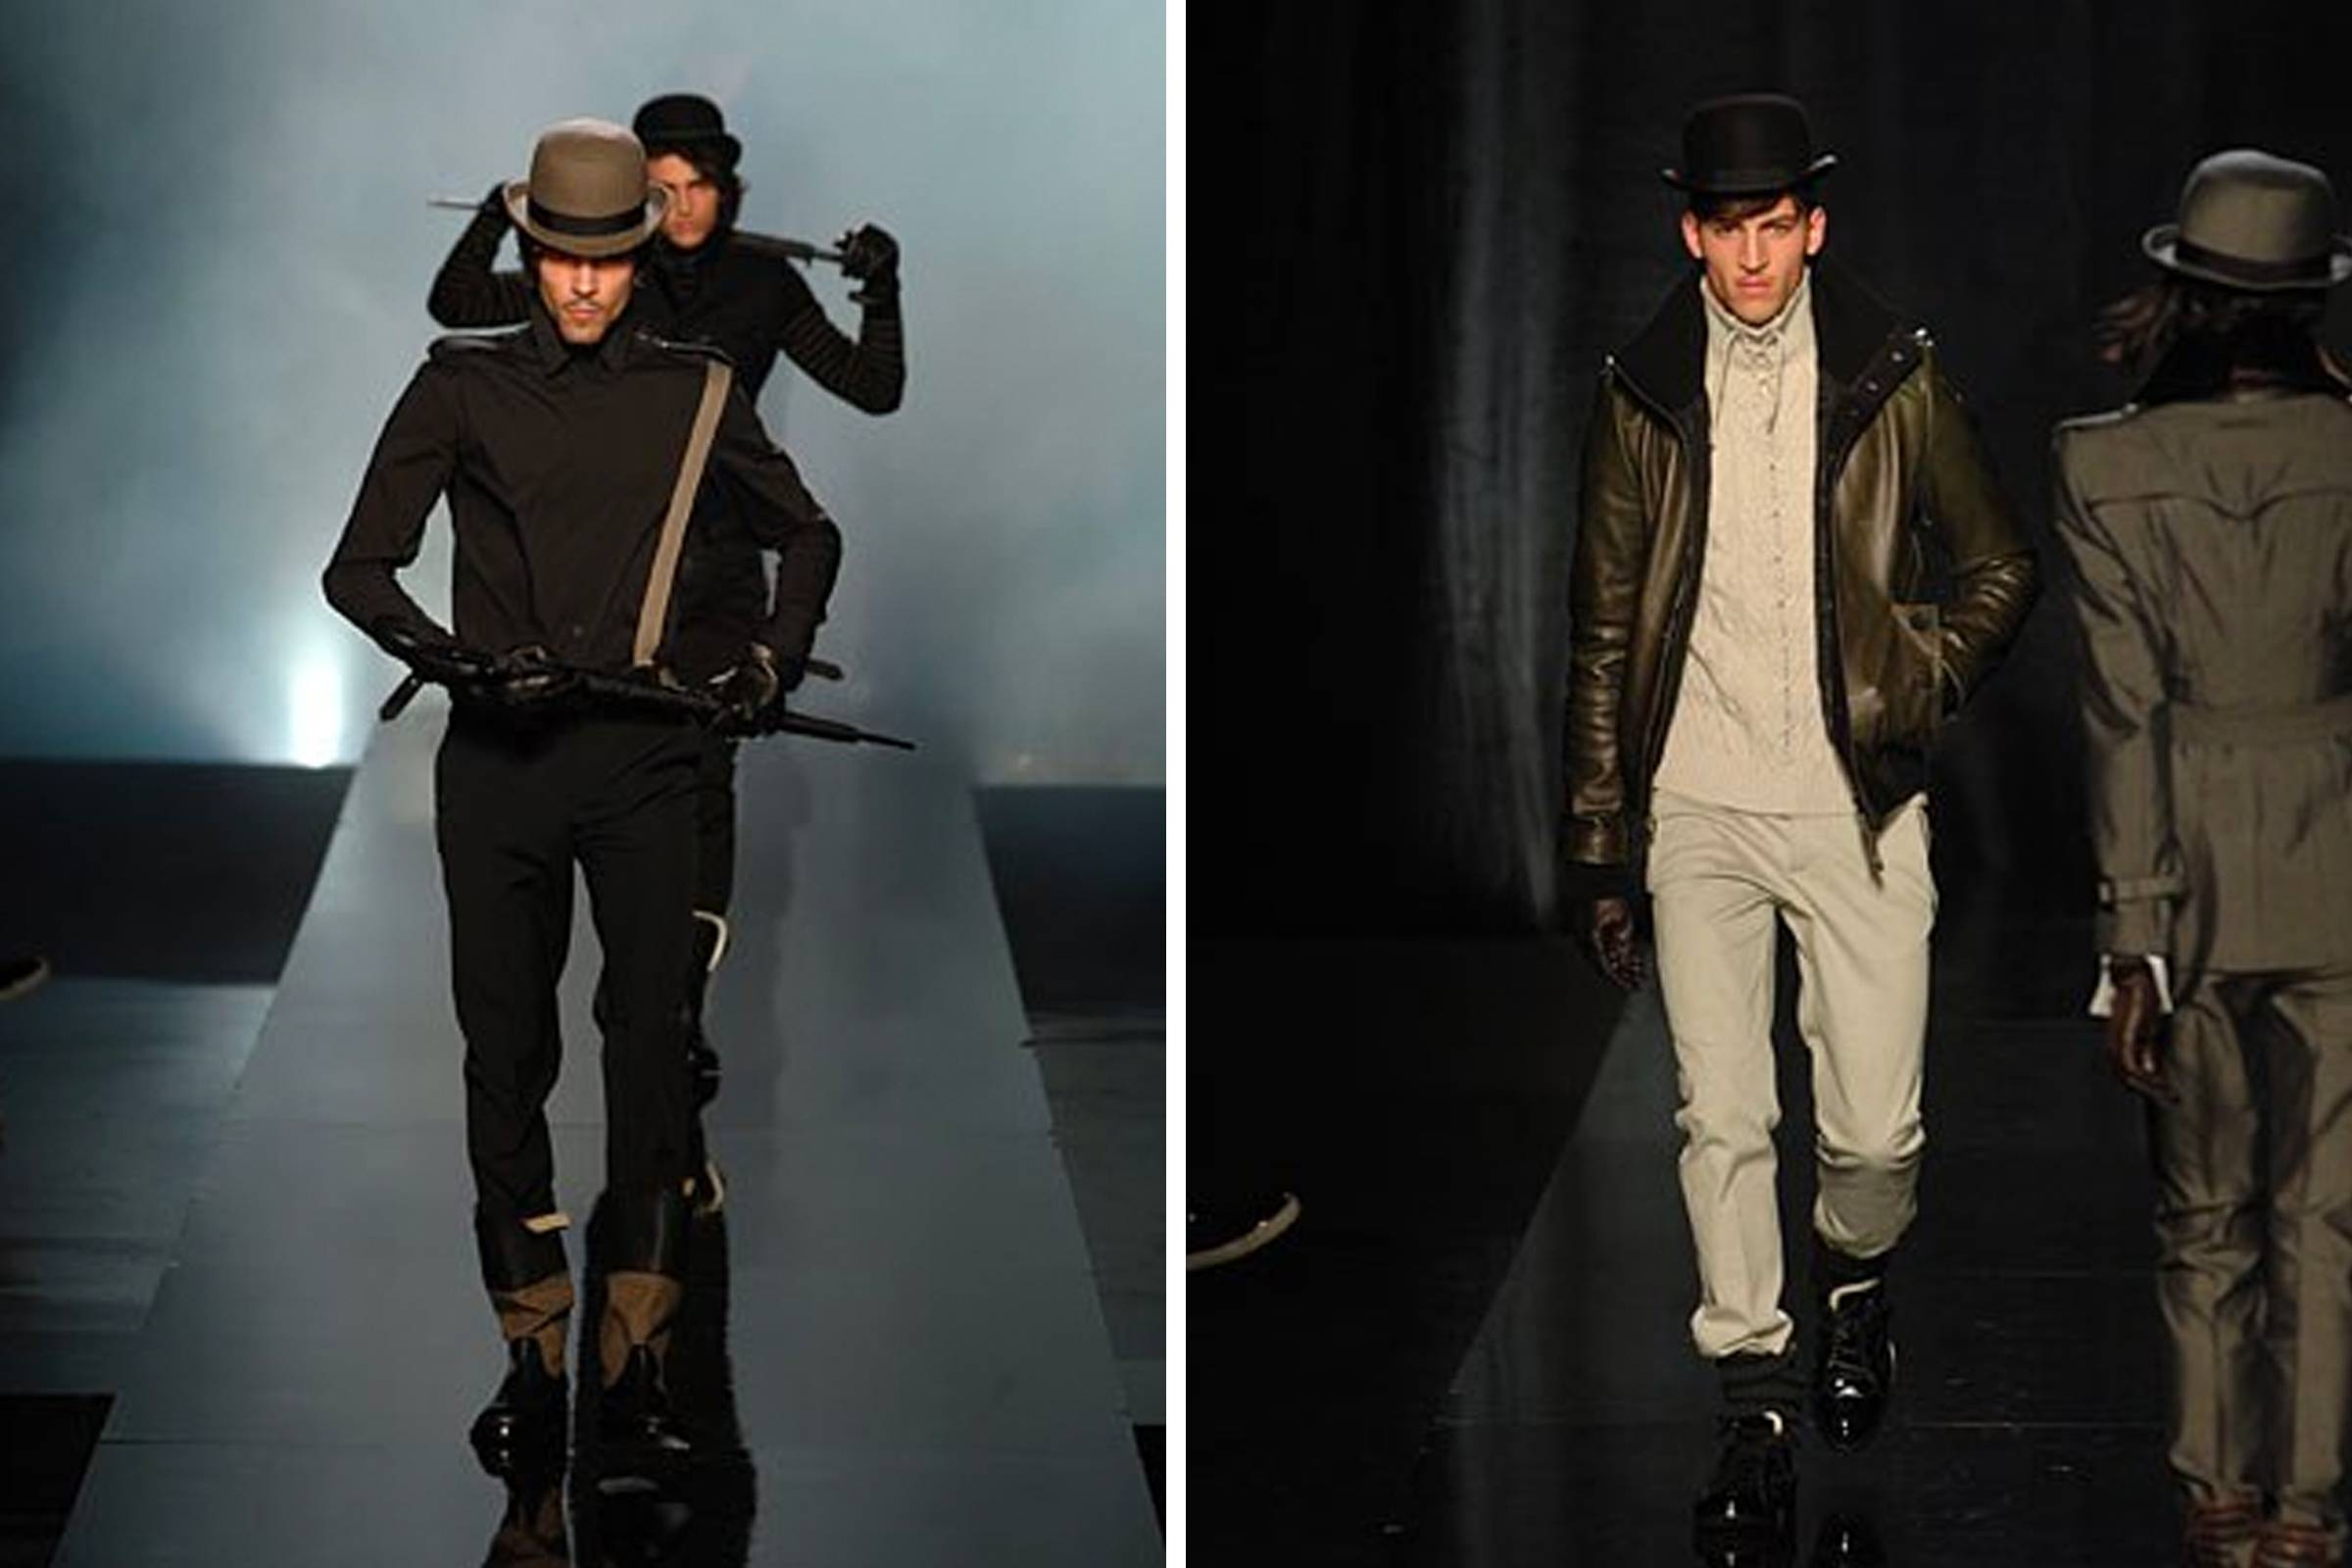 Looks from Jean-Paul Gaultier's Fall/Winter 2008 menswear collection